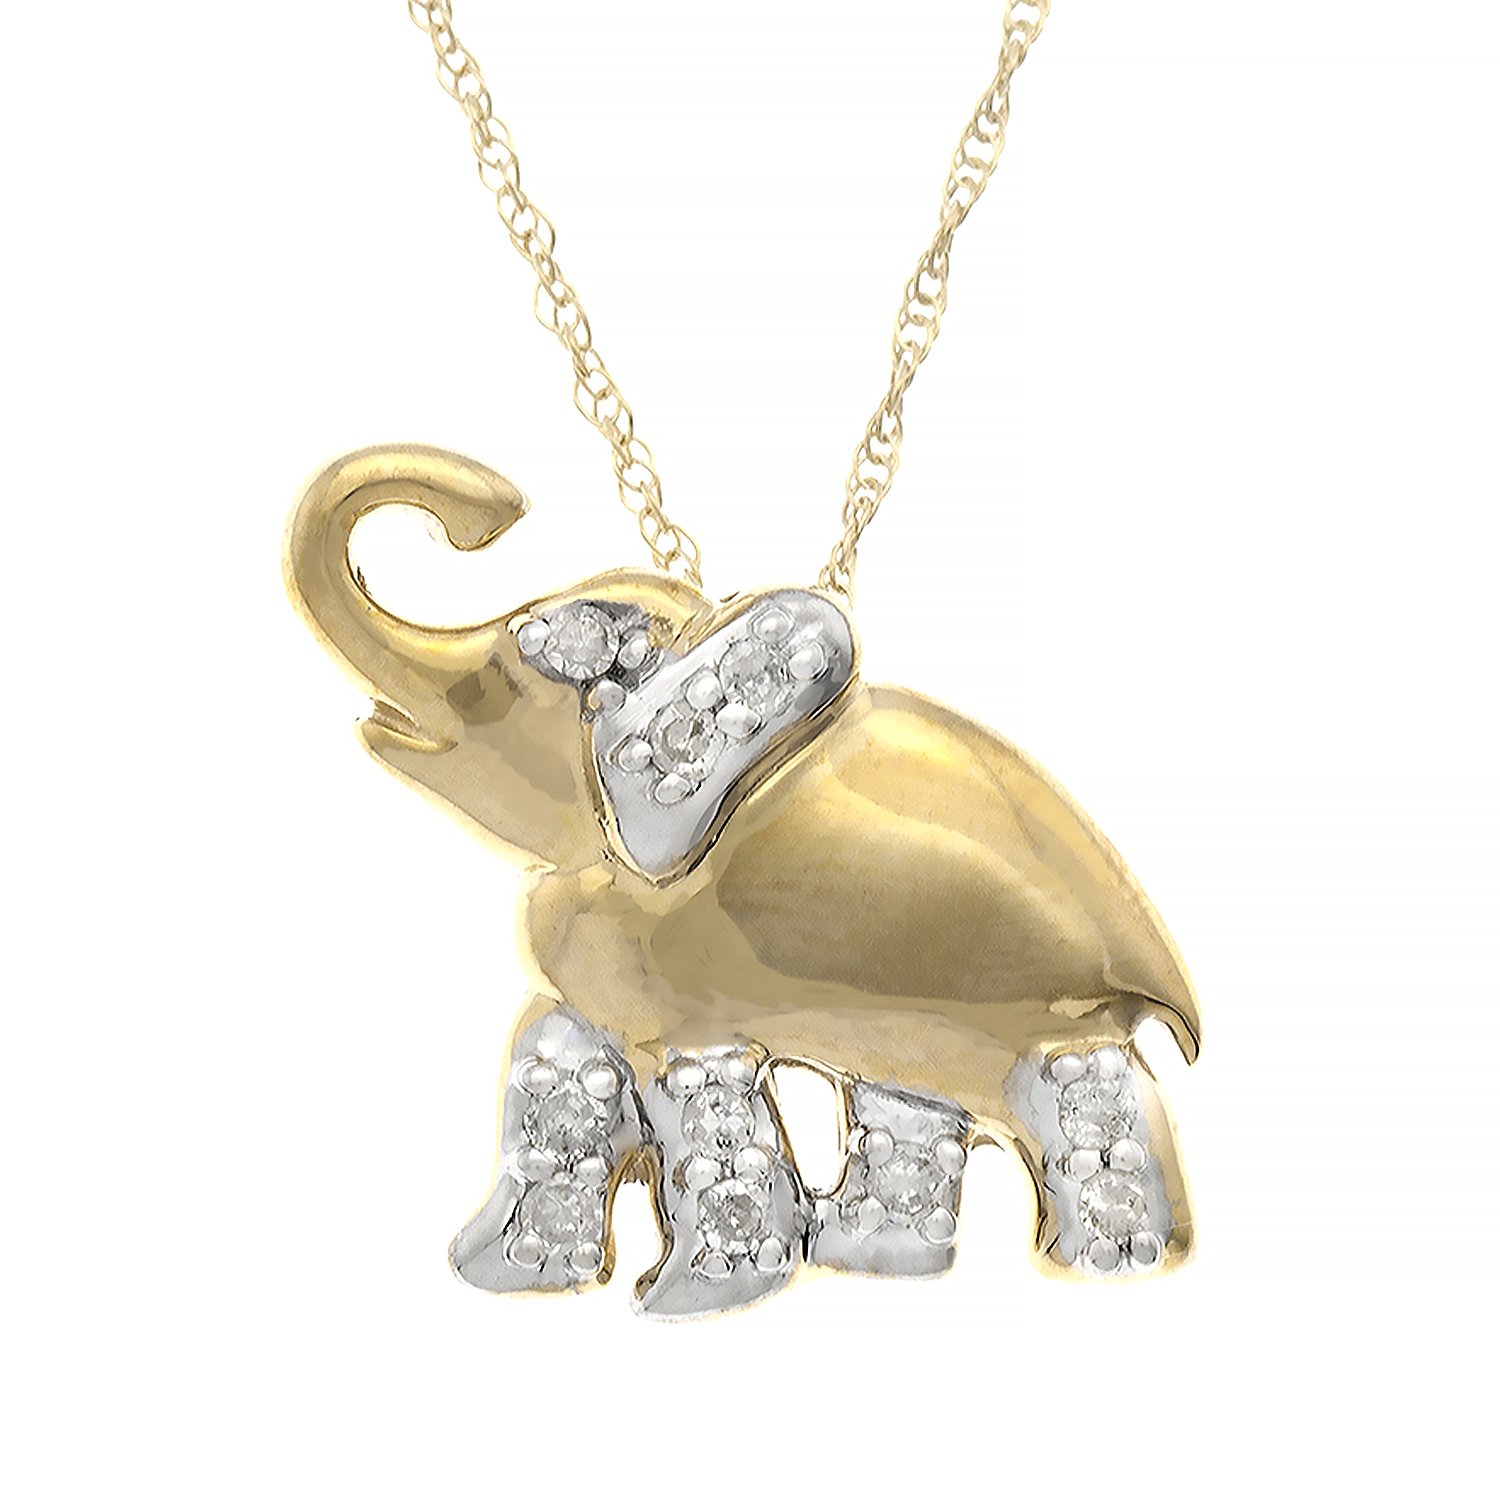 JewelExclusive 10K Yellow Gold 1/10cttw Natural Round-Cut Diamond (I-J Color, I2-I3 Clarity) Elephant Pendant-Necklace, 18''